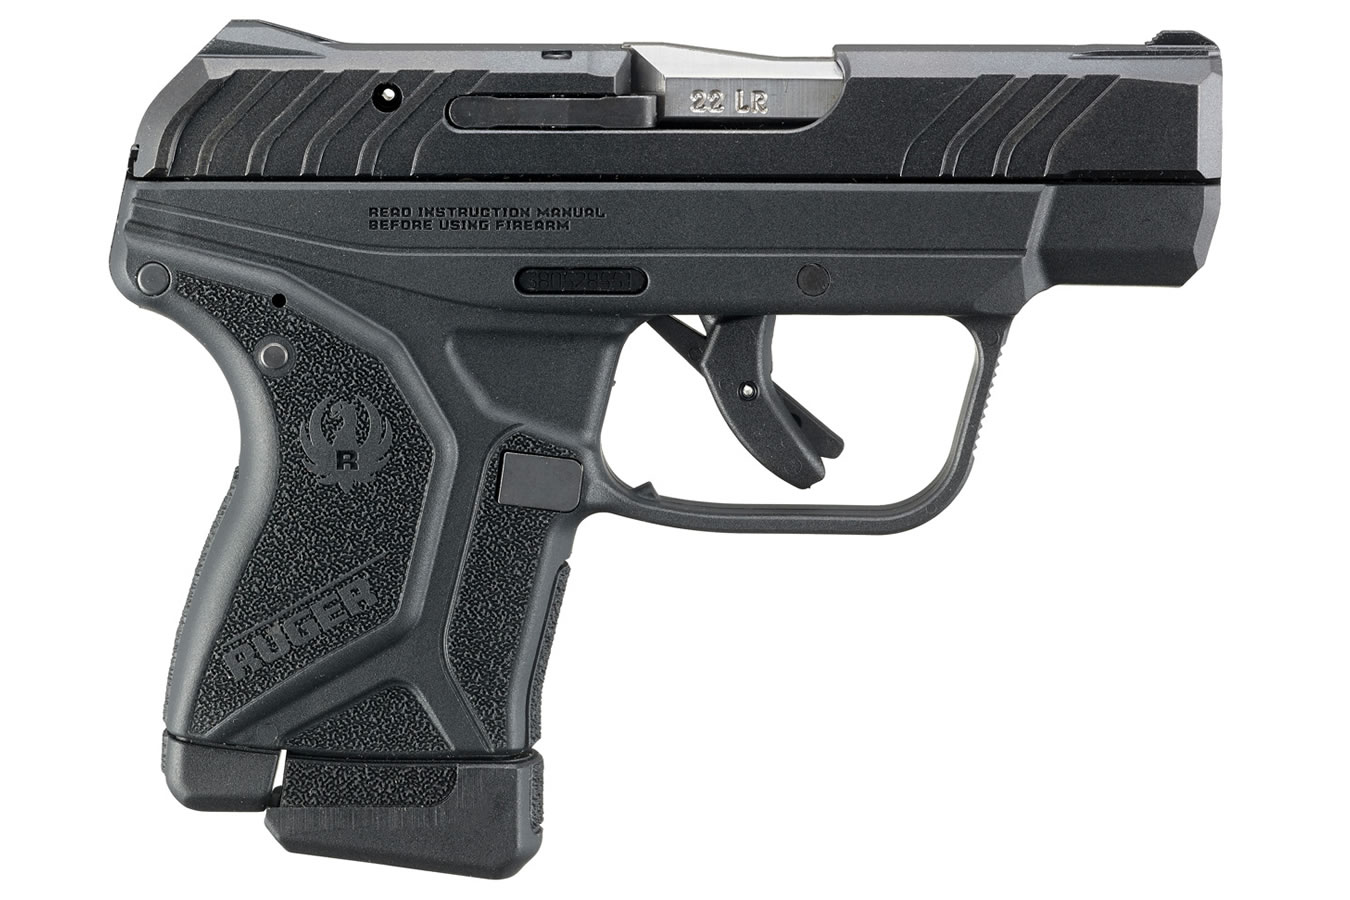 Image result for ruger lcp 22